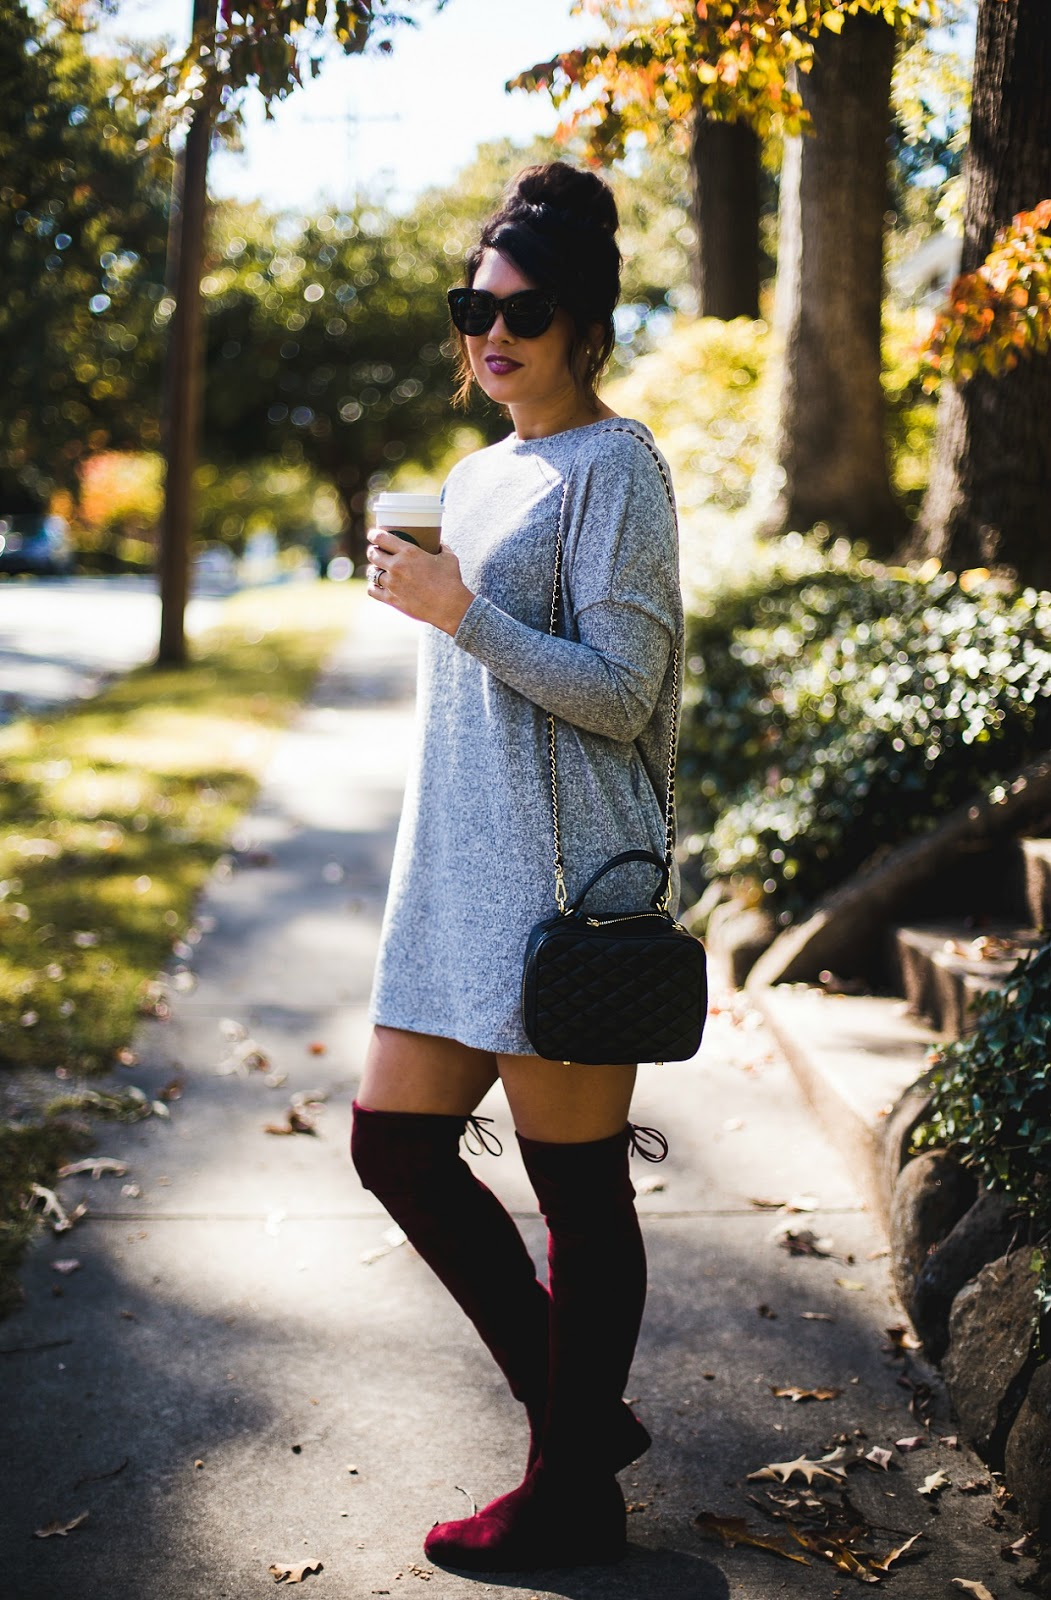 zara quilted crossbody, vici collection, sweater dress, life and messy hair, xo samantha brooke, samantha brooke, nc fashion blogger, nc photographer, fashion post, over the knee boots, stuart weitzman over the knee boot dupes